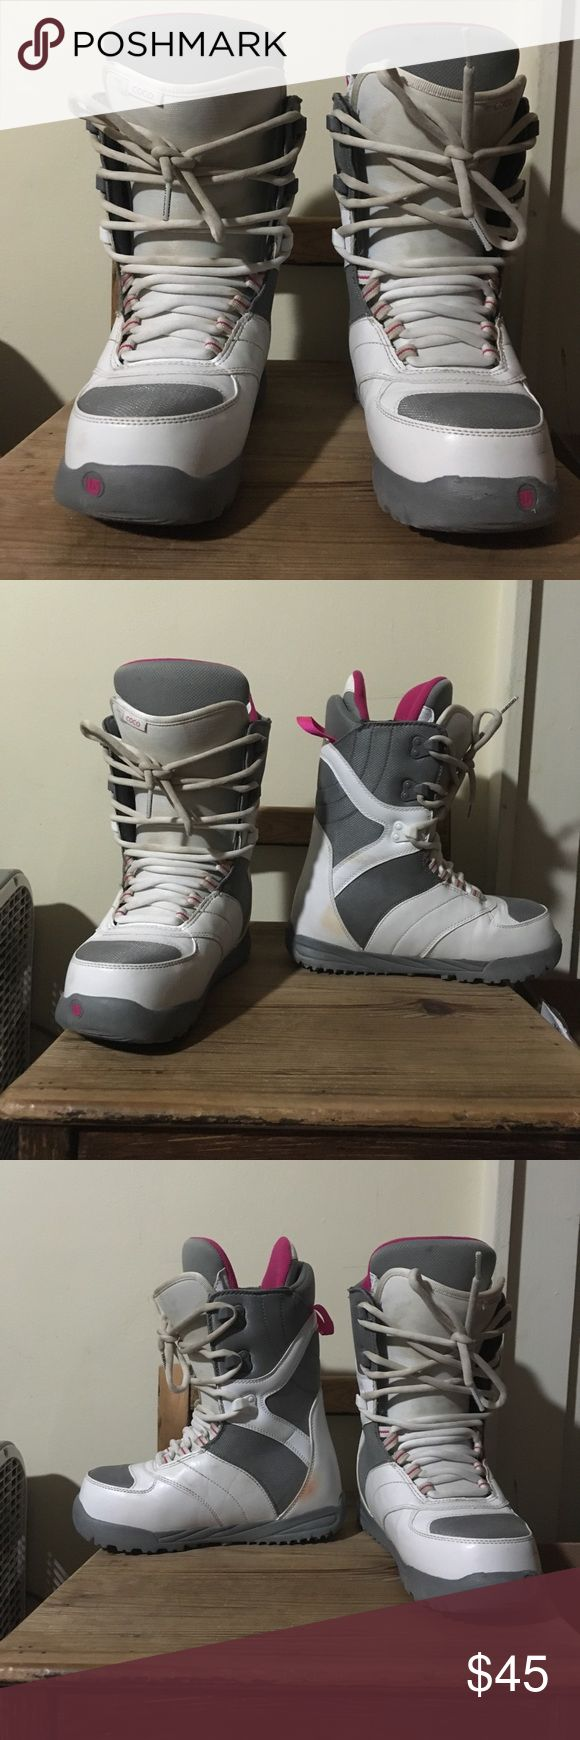 Burton snowboard boots Awesome burton snowboard boots. Size 8 women's coco  Pink gray and white colors. Minor marks on boots from binding. Please refer to pictures. Ask any question and make an offer ! Burton Shoes Winter & Rain Boots